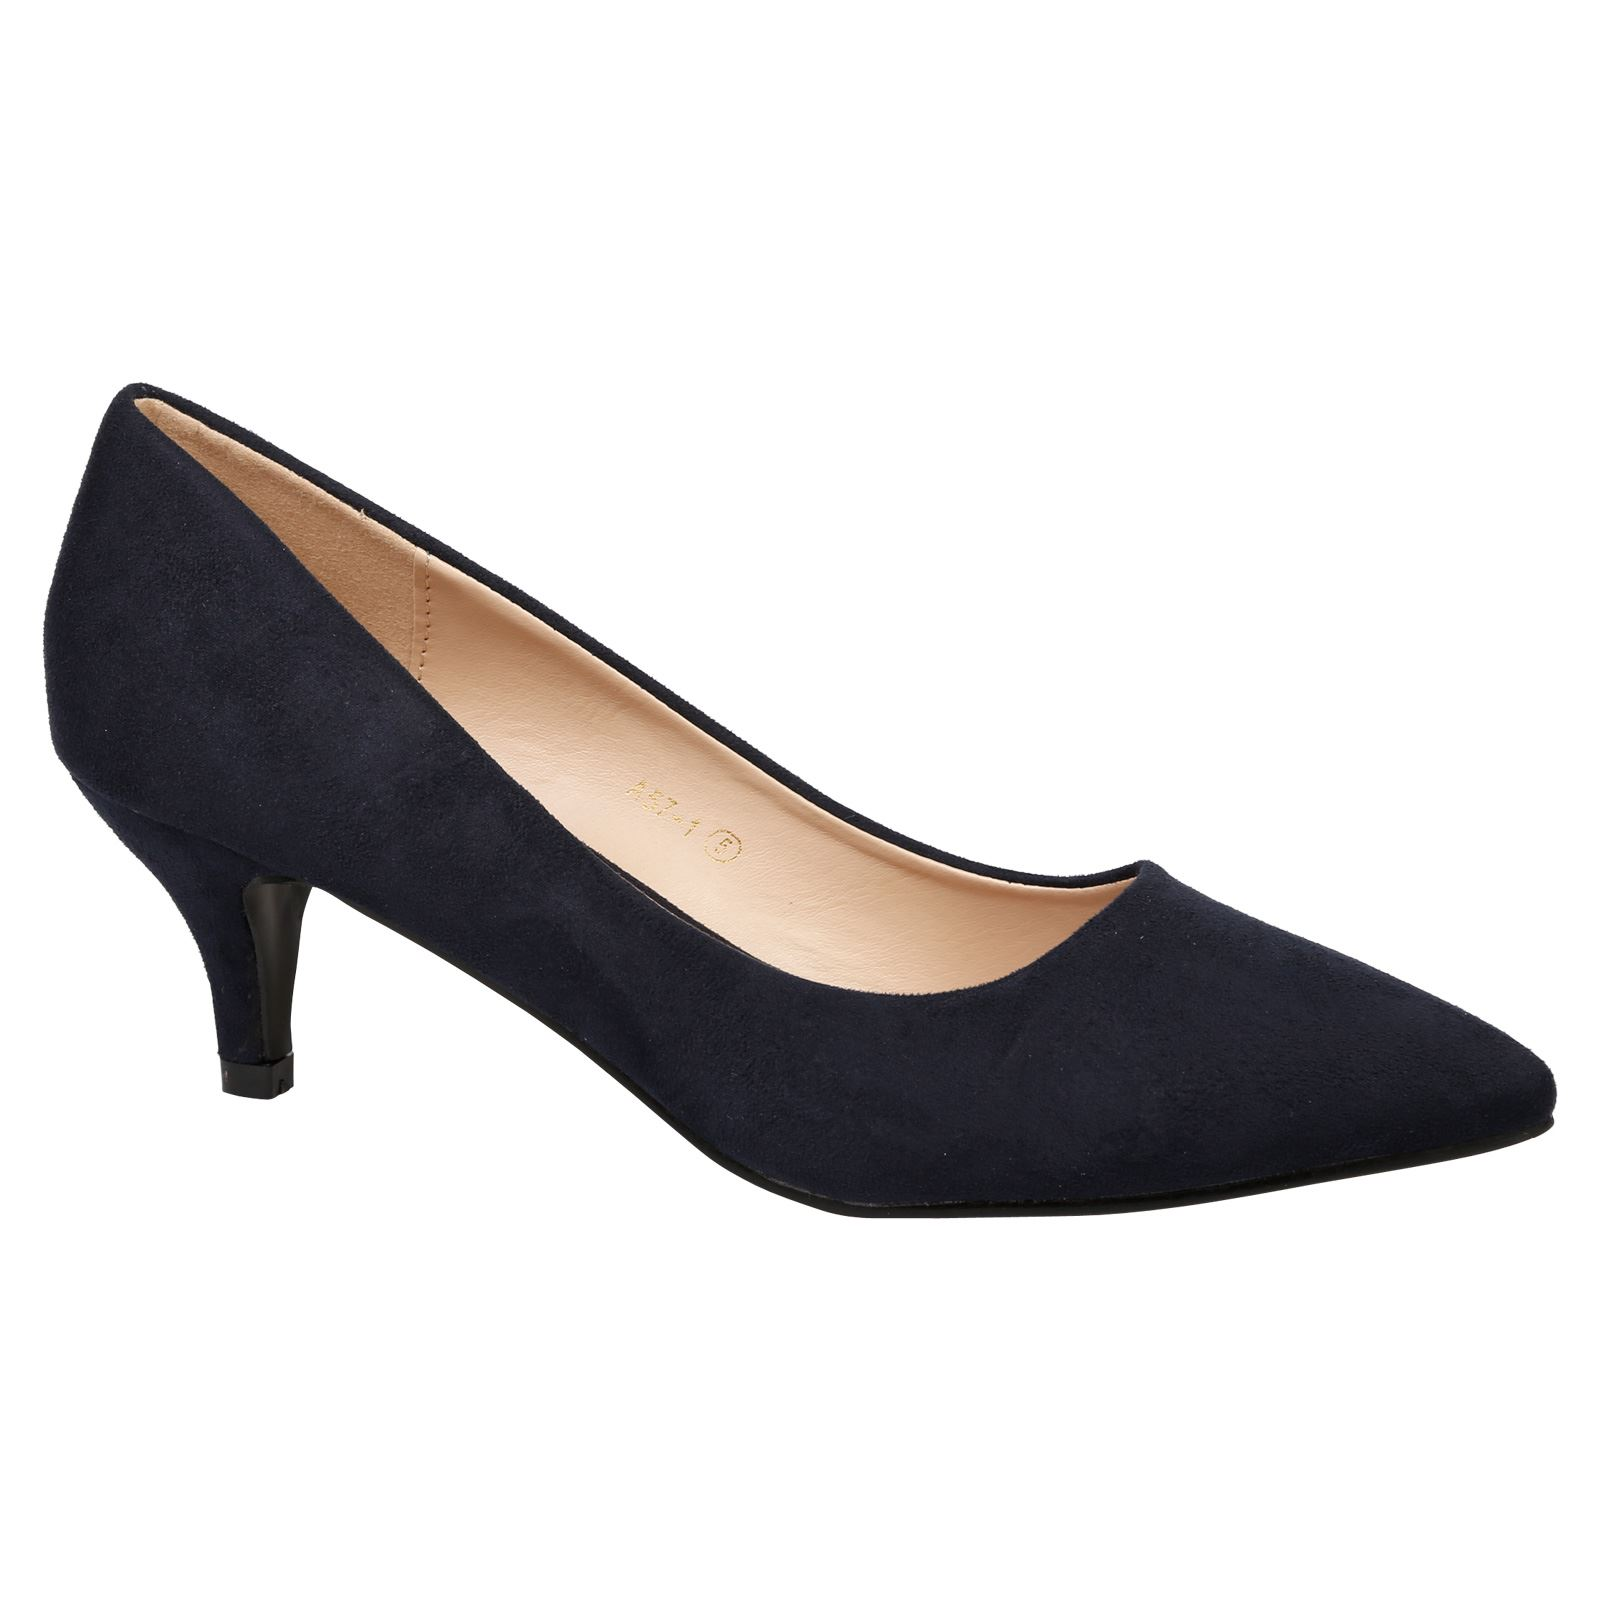 Miranda Womens Low Mid Kitten Heels Slip On Court Shoes Ladies Pumps Office  Size; Picture 2 of 5 ...